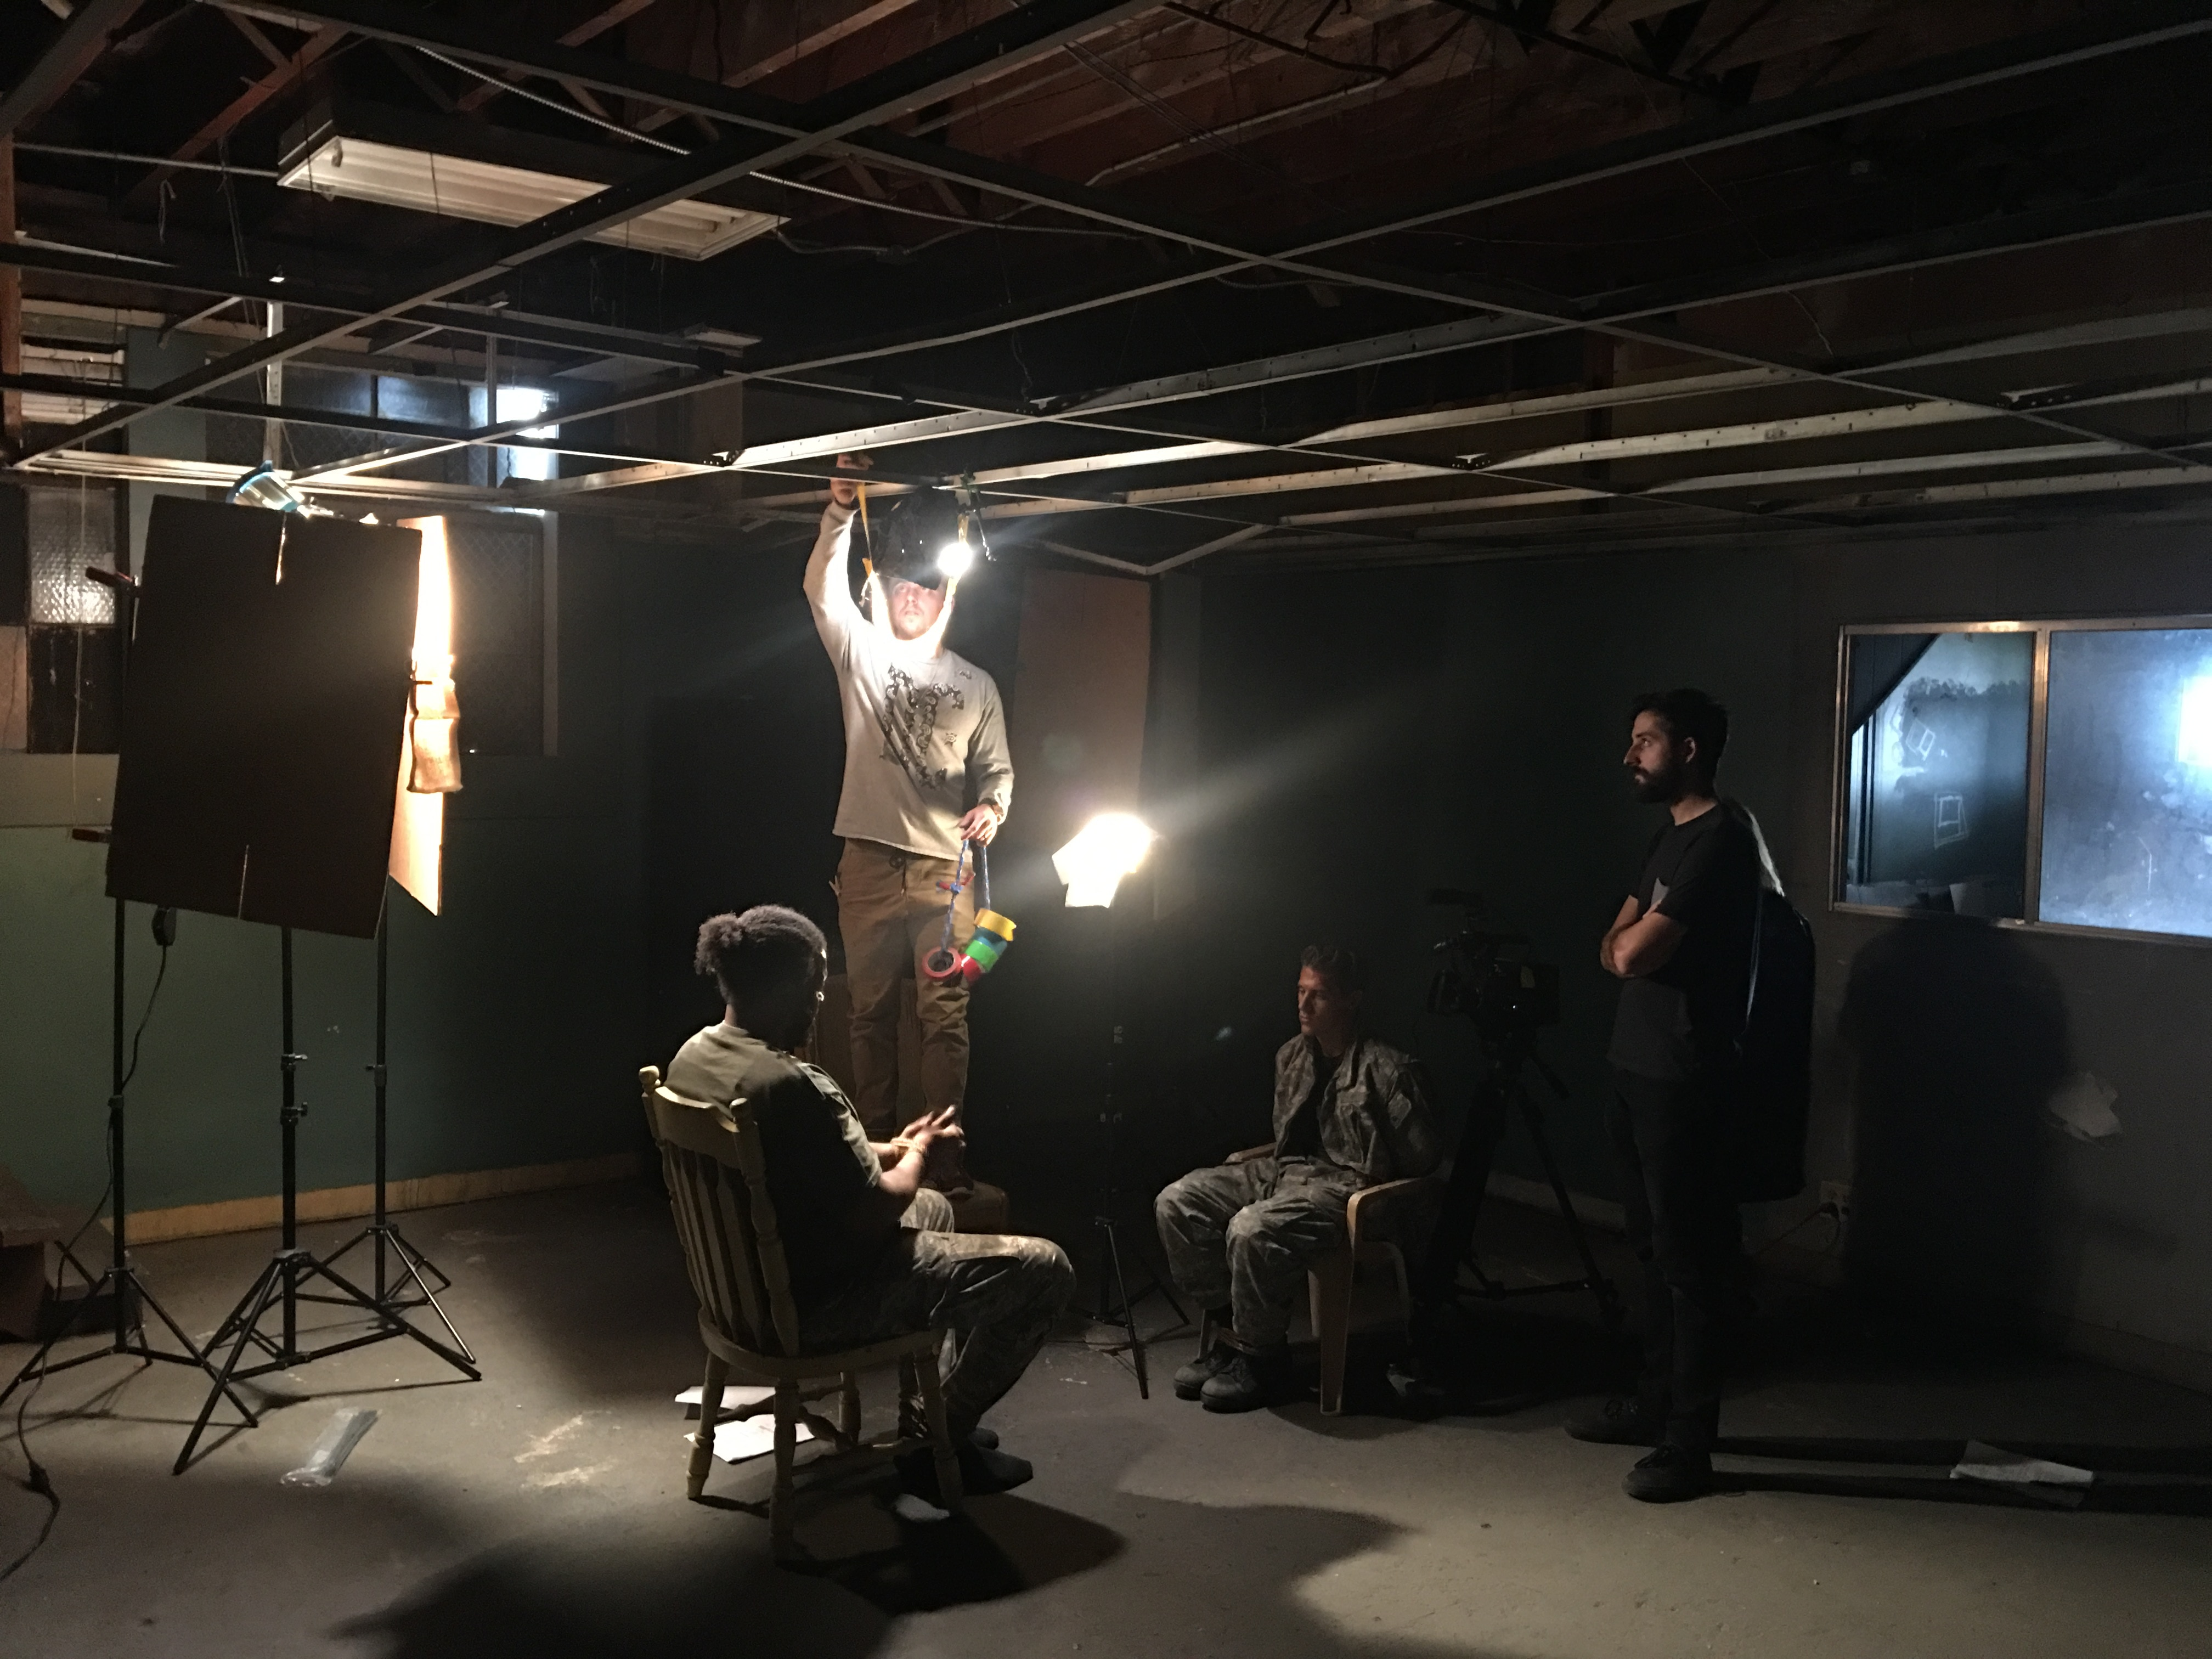 IMG 1893 - Exclusive Behind-the-Scenes Photos of 18 Minutes